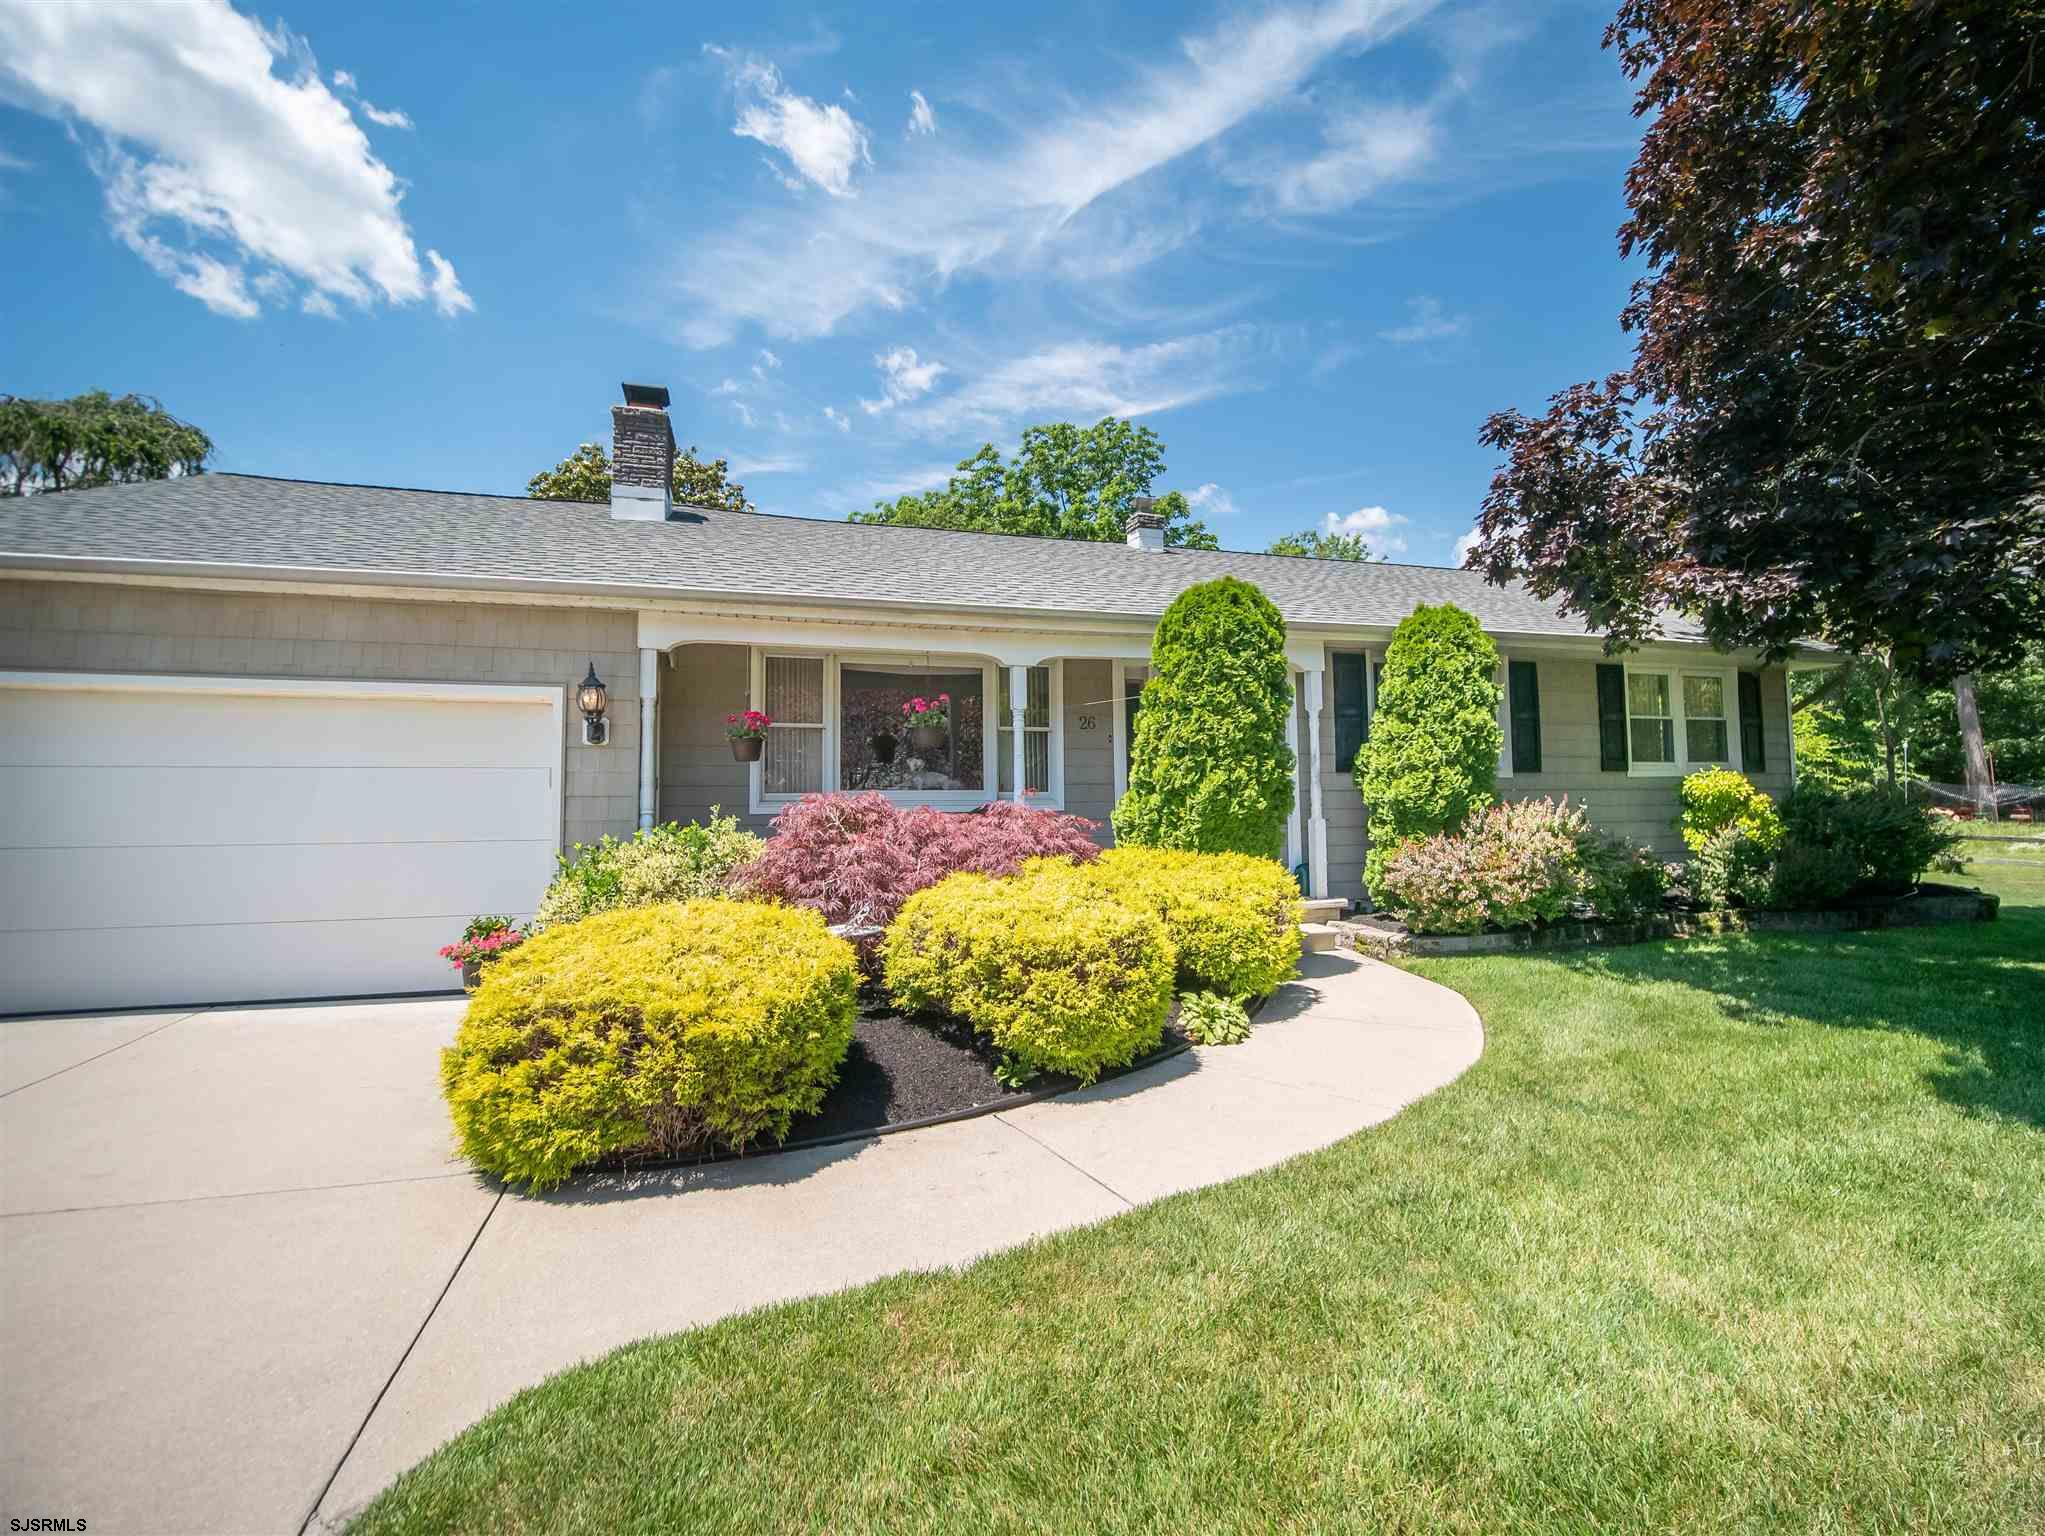 This incredible 4 bedroom 2 bath home is sure to blow you away! Located in a peaceful neighborhood,